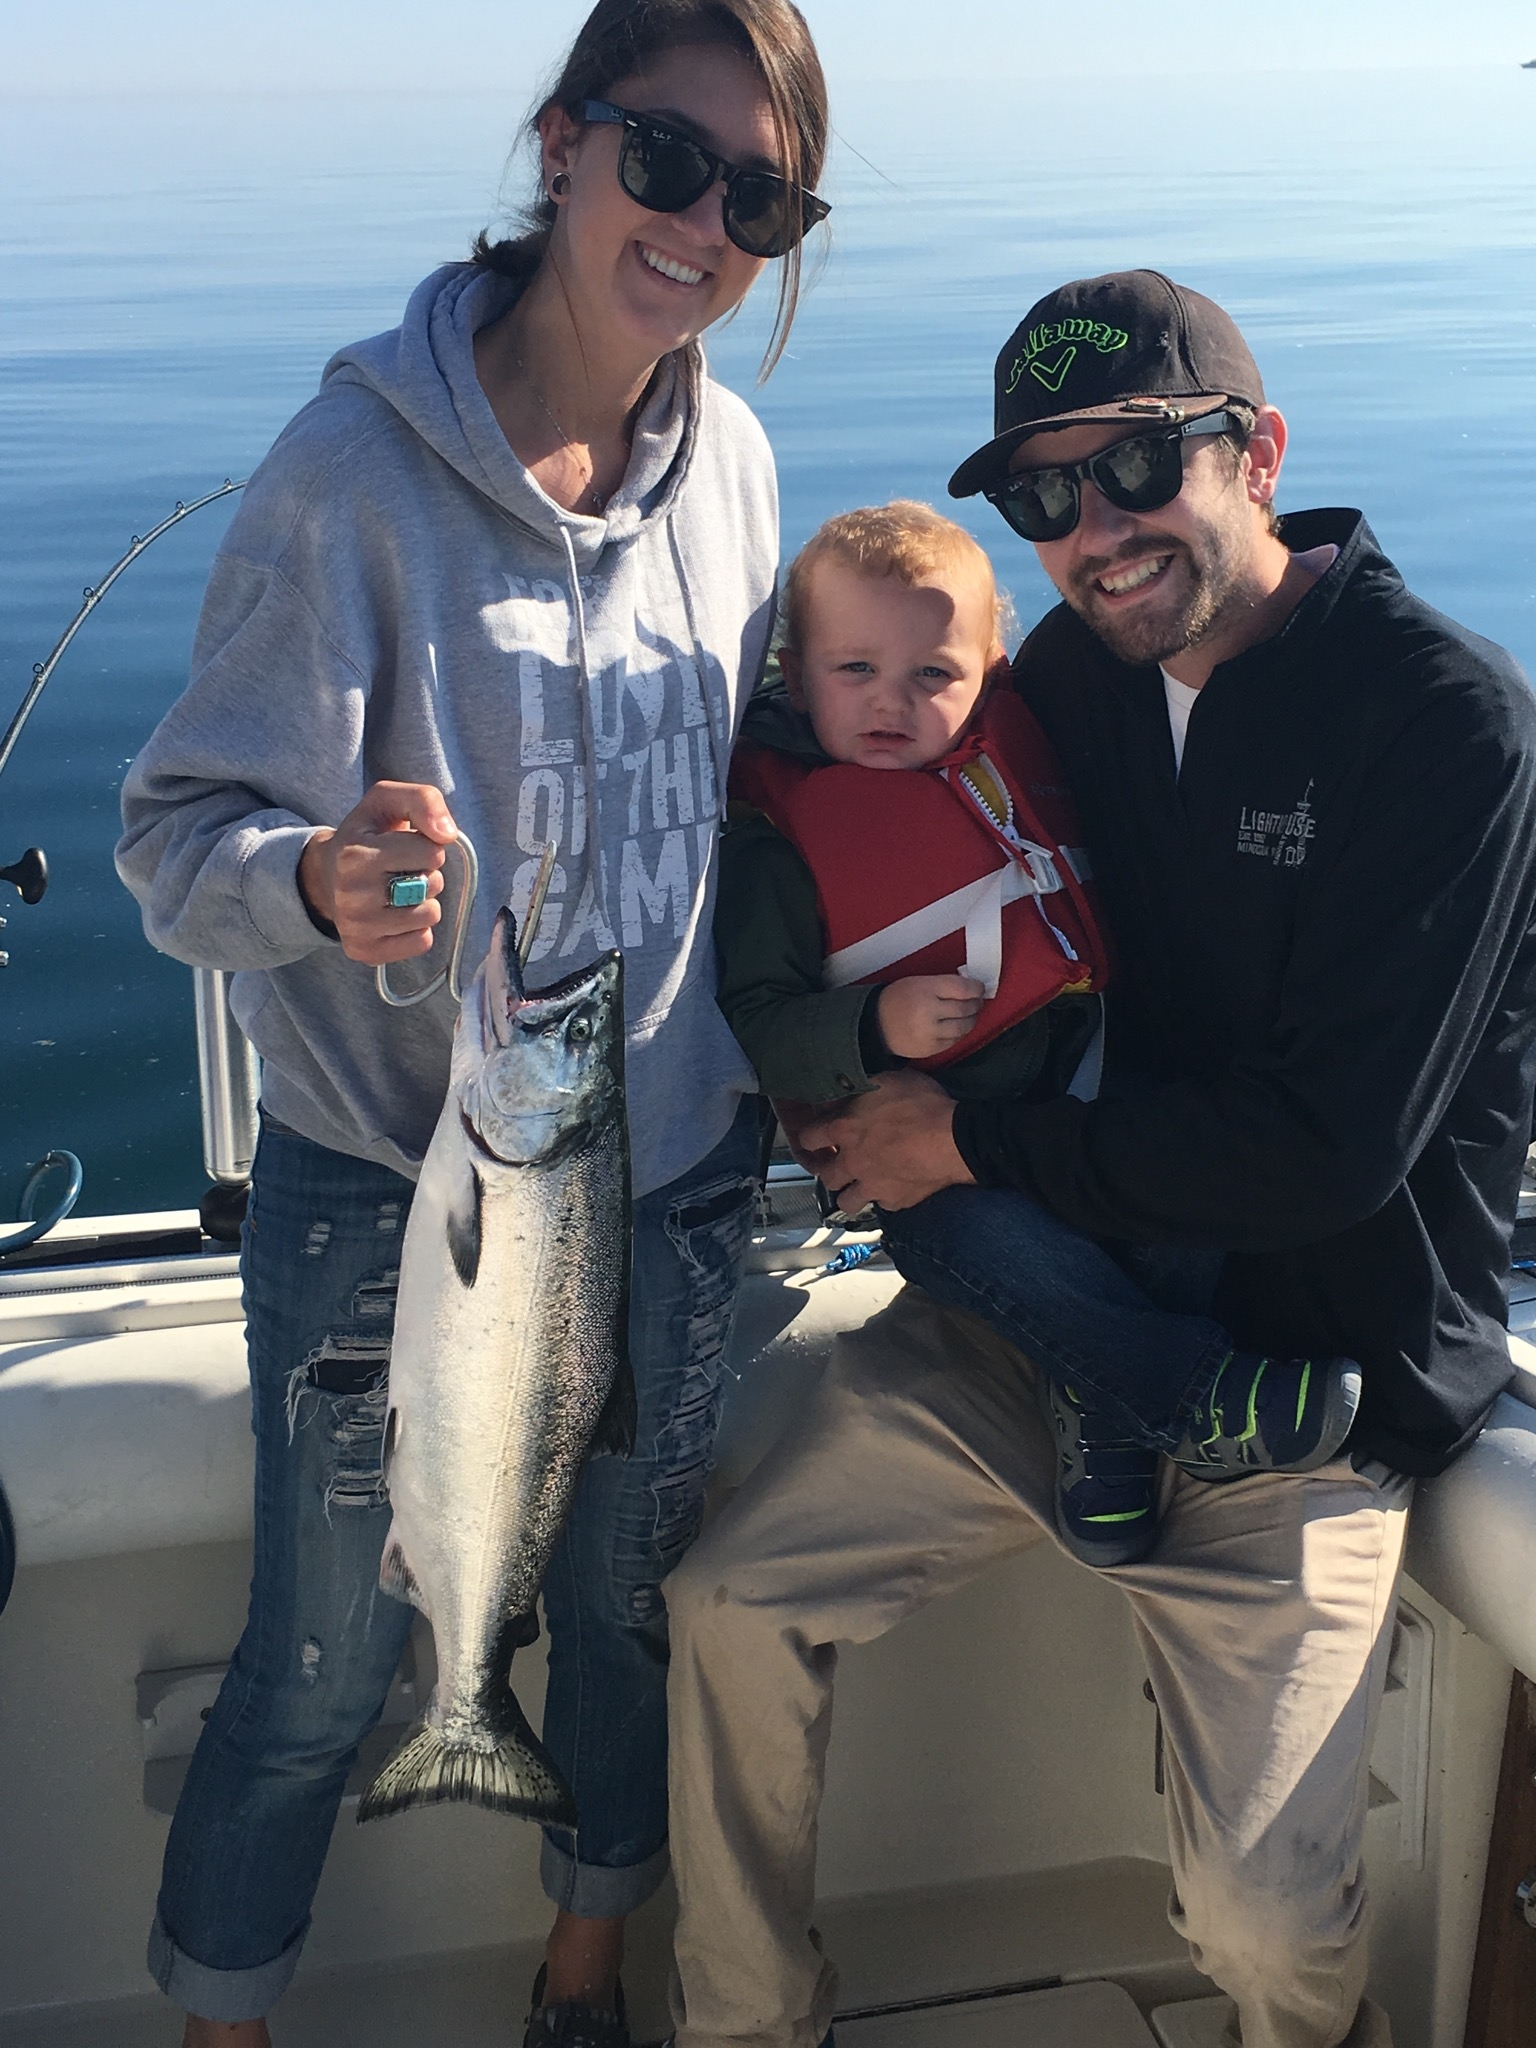 Jack 39 s charter service in milwaukee wi 53202 for Milwaukee charter fishing